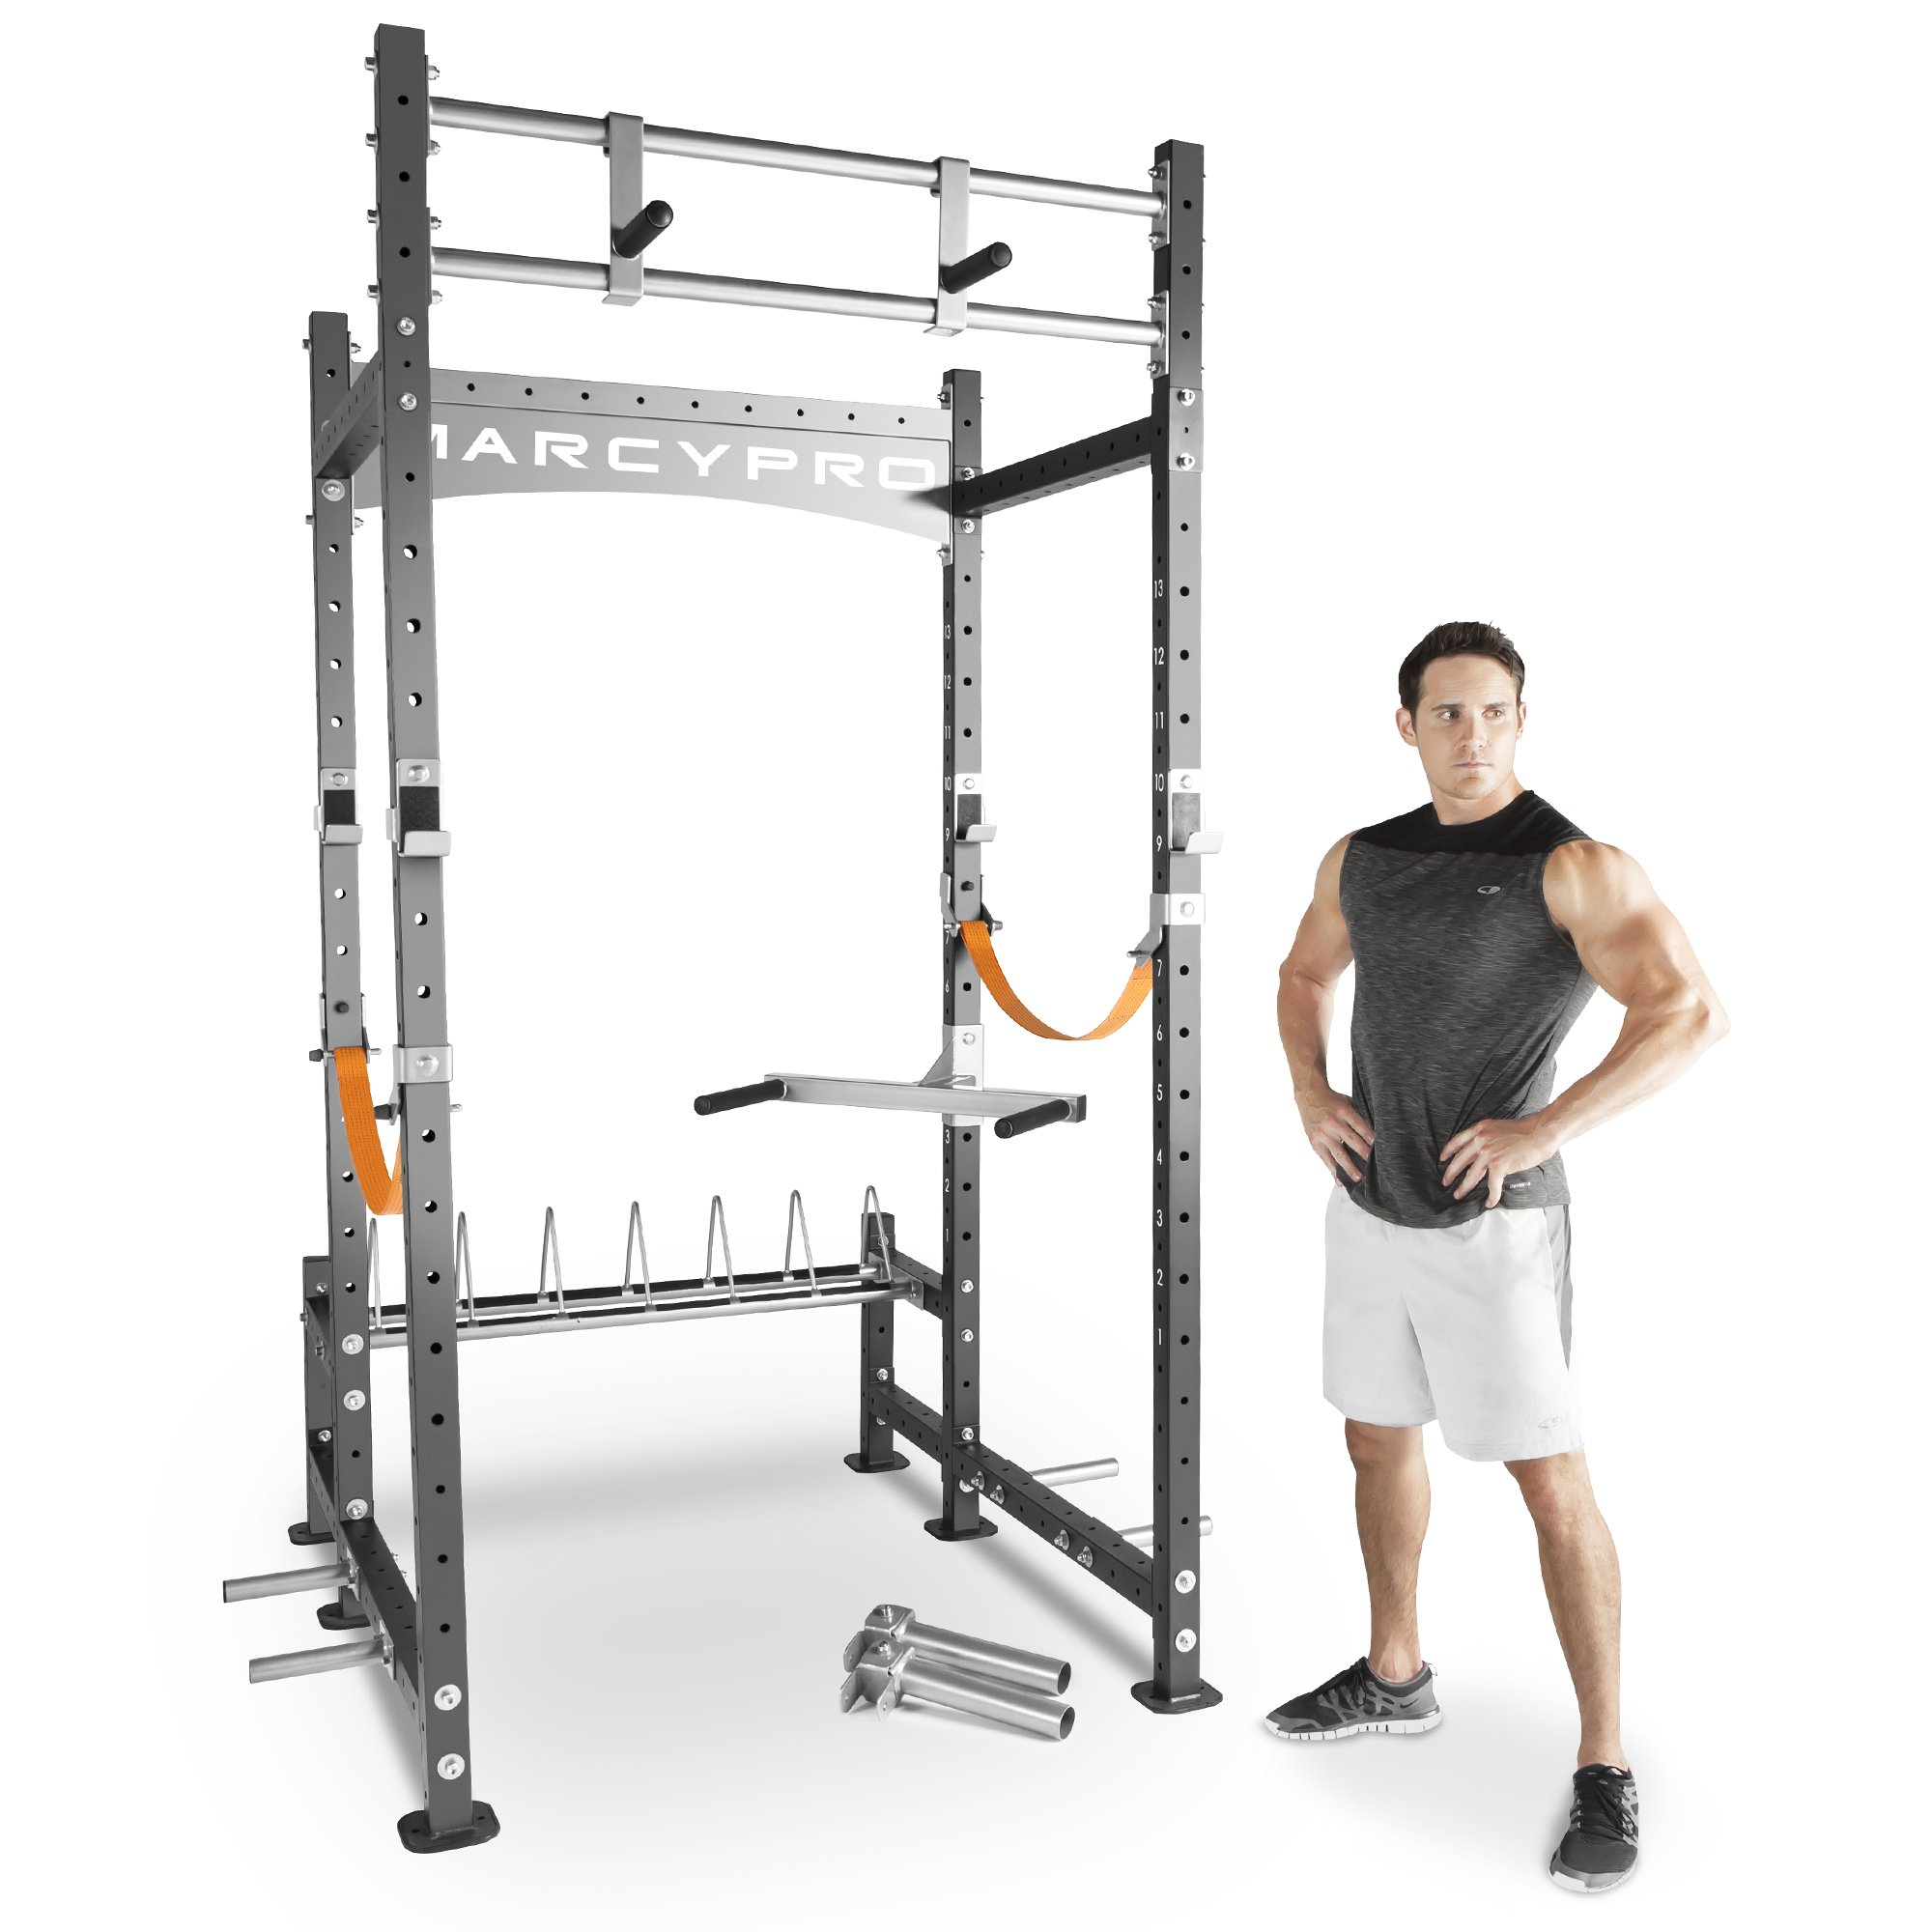 Marcy Pro Heavy-Duty Home Workout Gym Pull Up Weight Training Fitness Power Rack by Impex